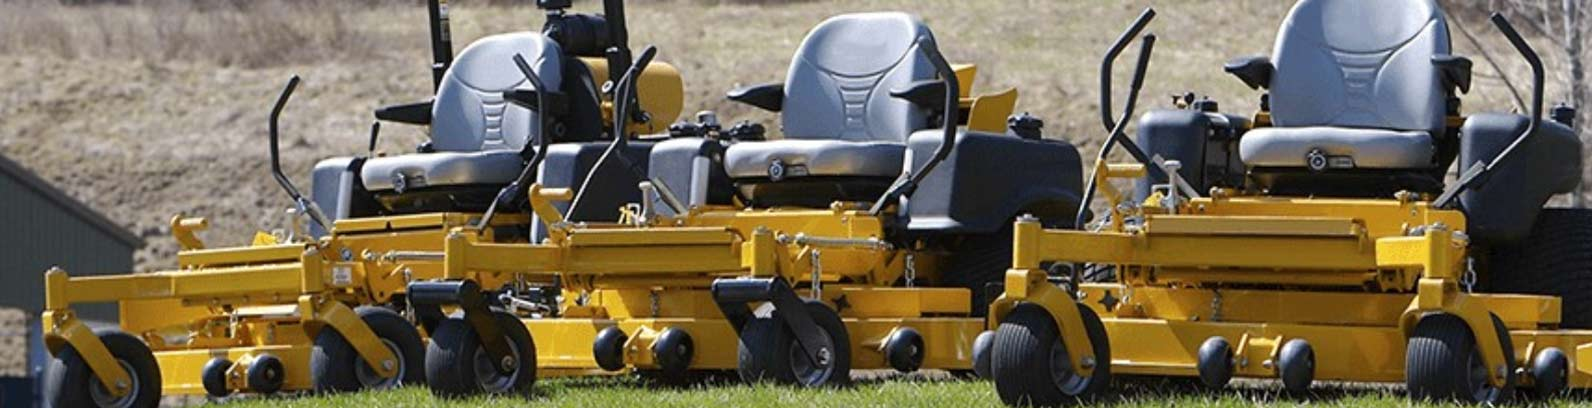 Mower World Queensland